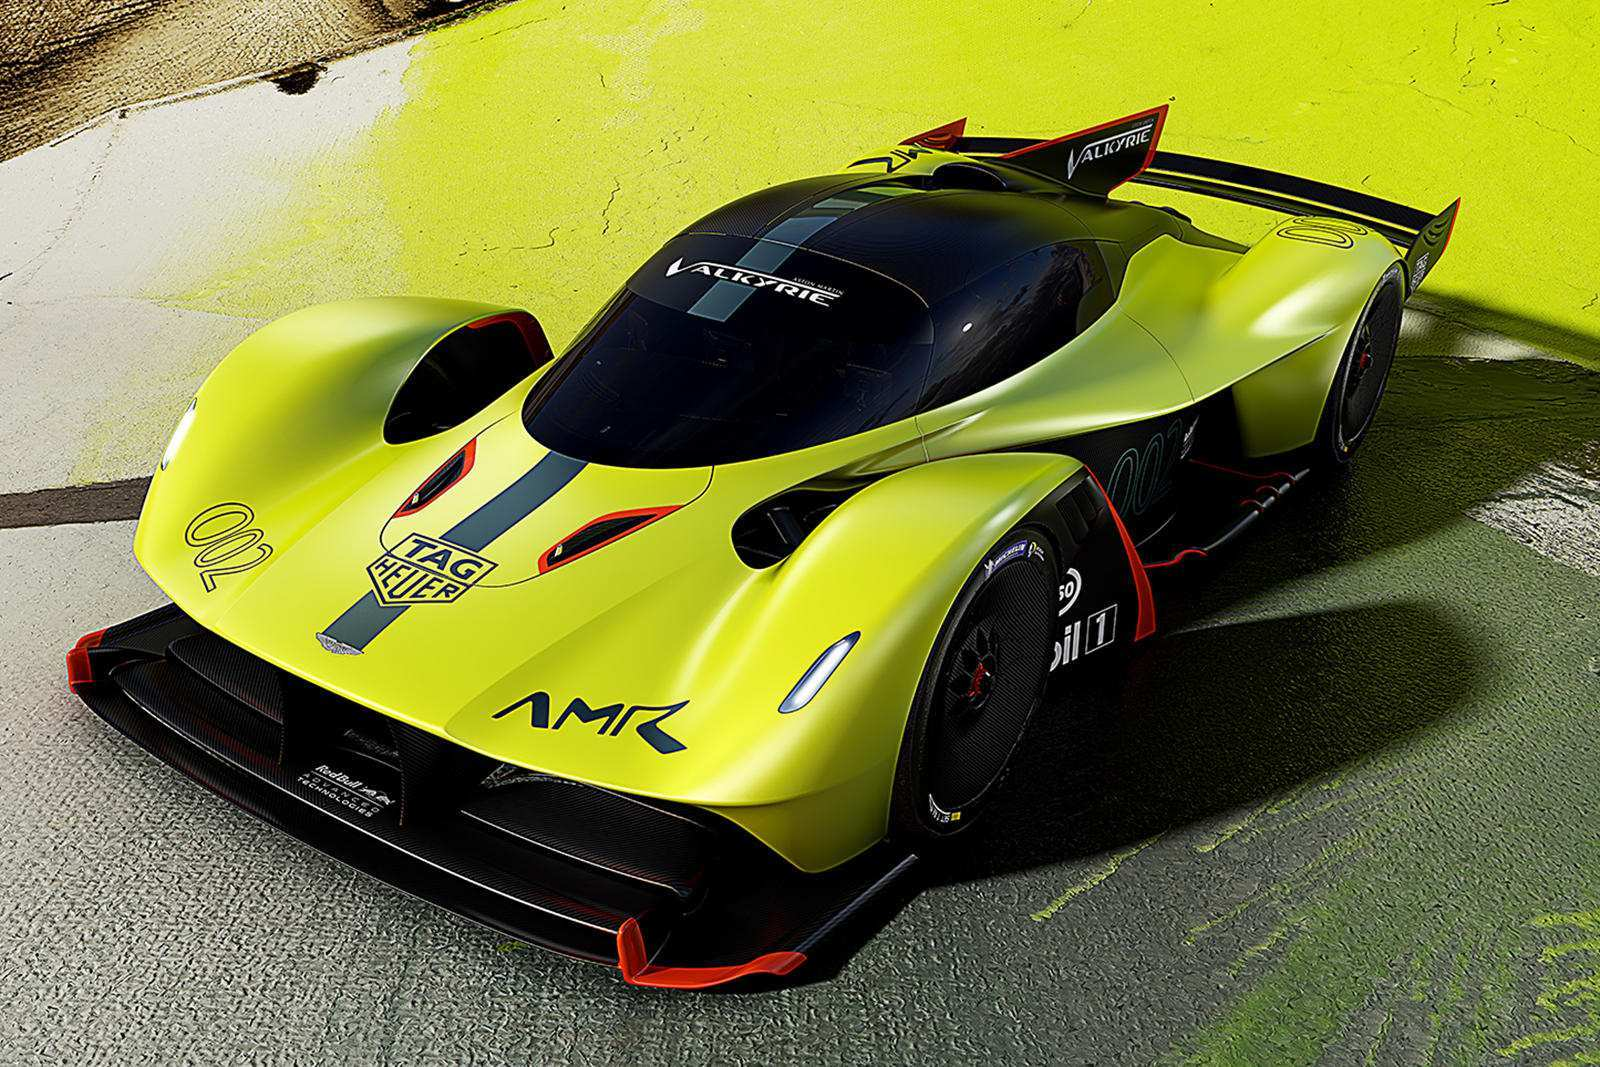 39 New Mazda Lmp1 2020 Picture with Mazda Lmp1 2020